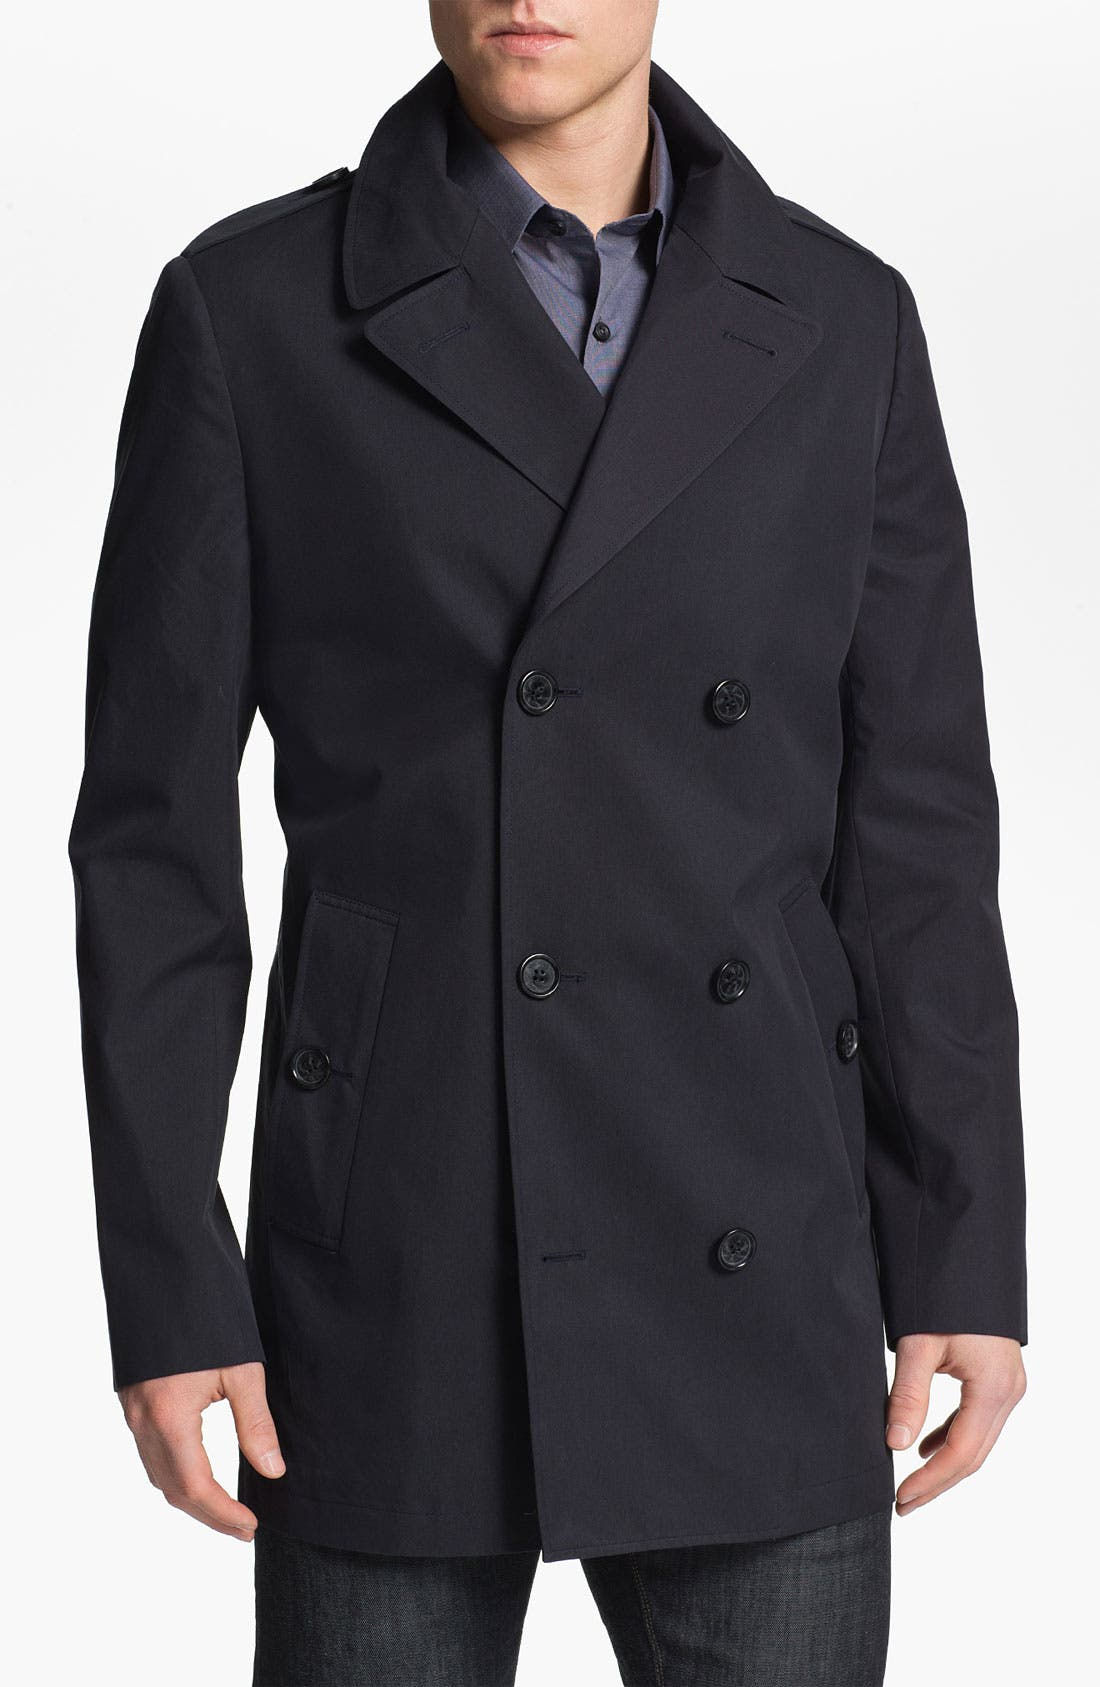 Alternate Image 1 Selected - Michael Kors Double Breasted Peacoat